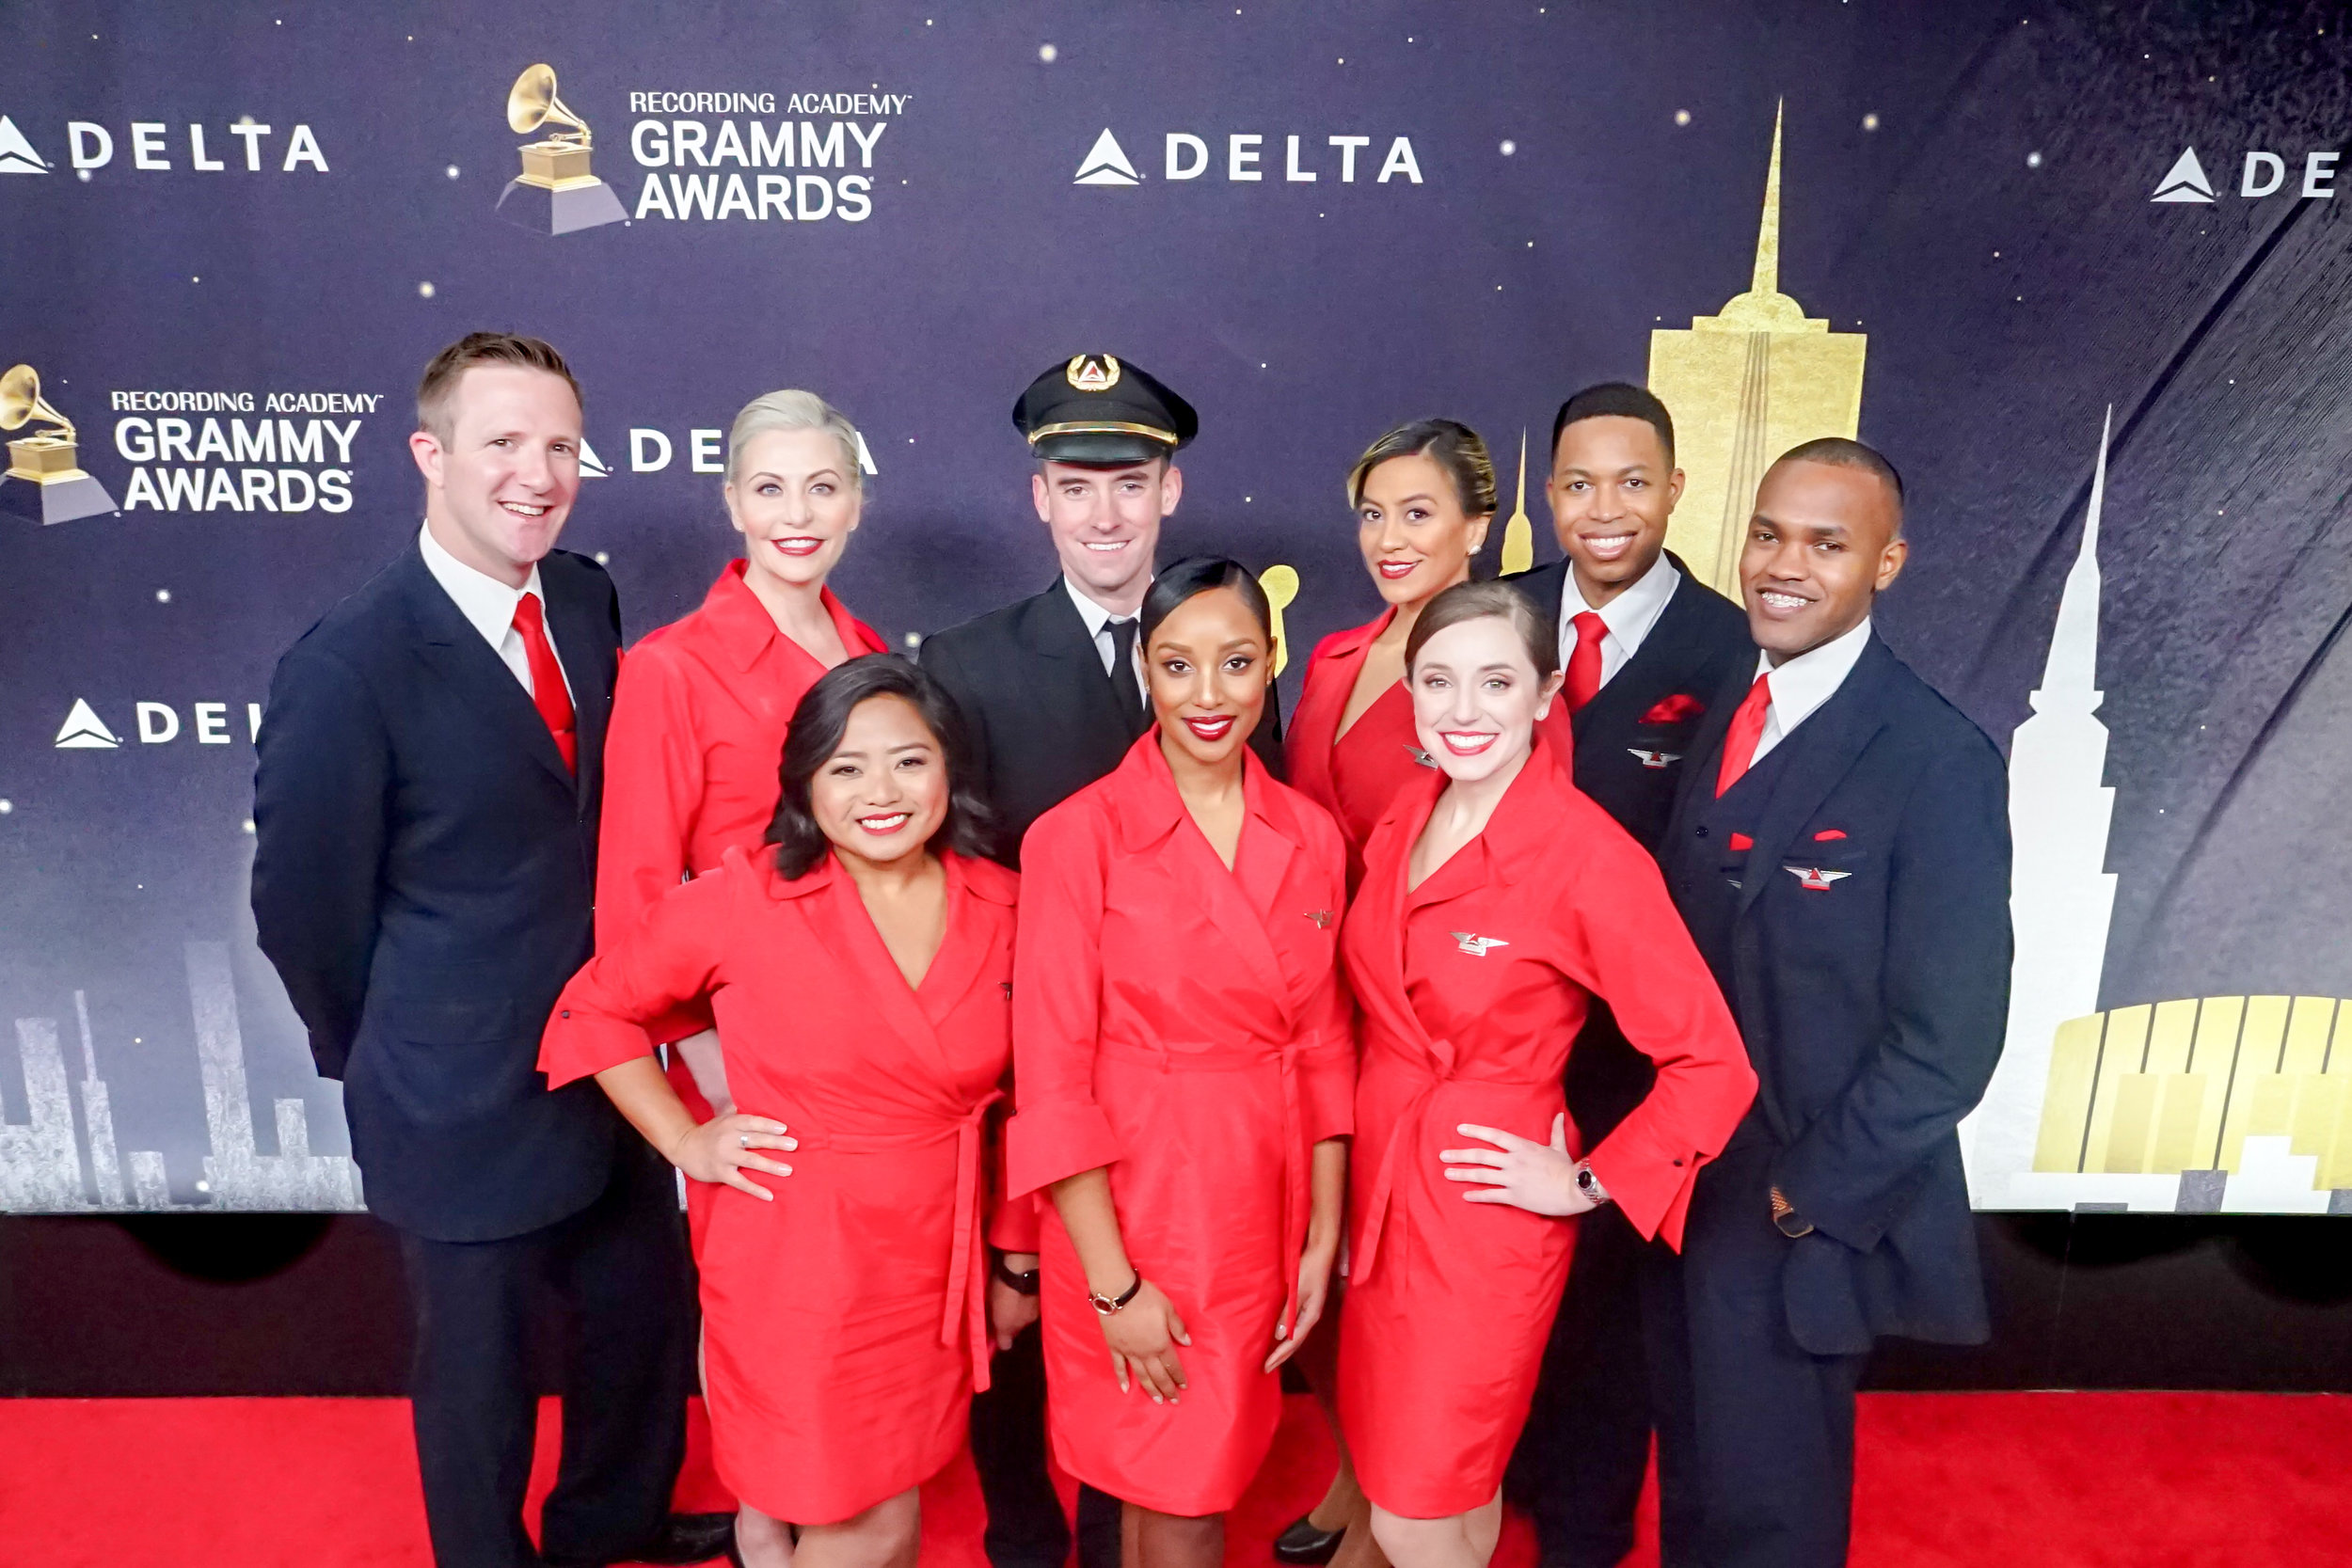 DELTA GRAMMYS_WEBSITE UPDATE-3.JPG